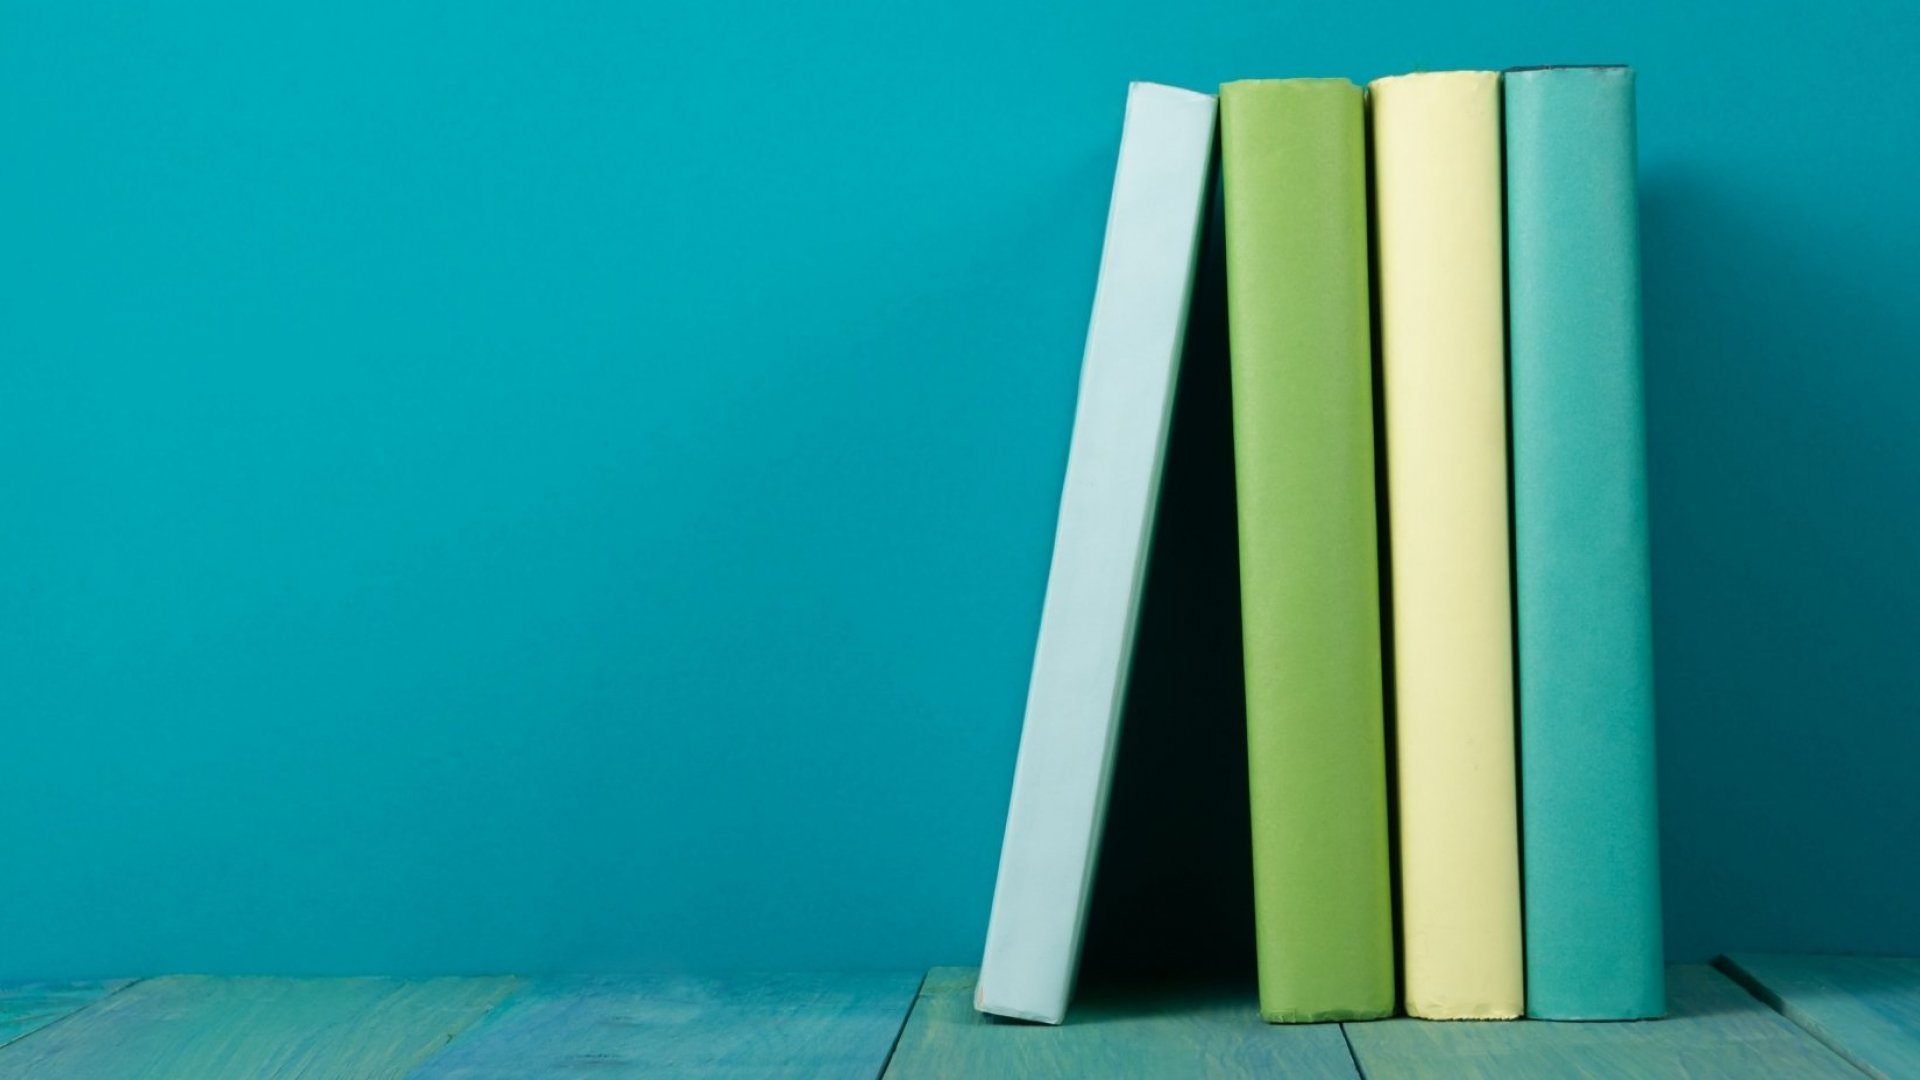 5 New Books You Need on Your Reading List